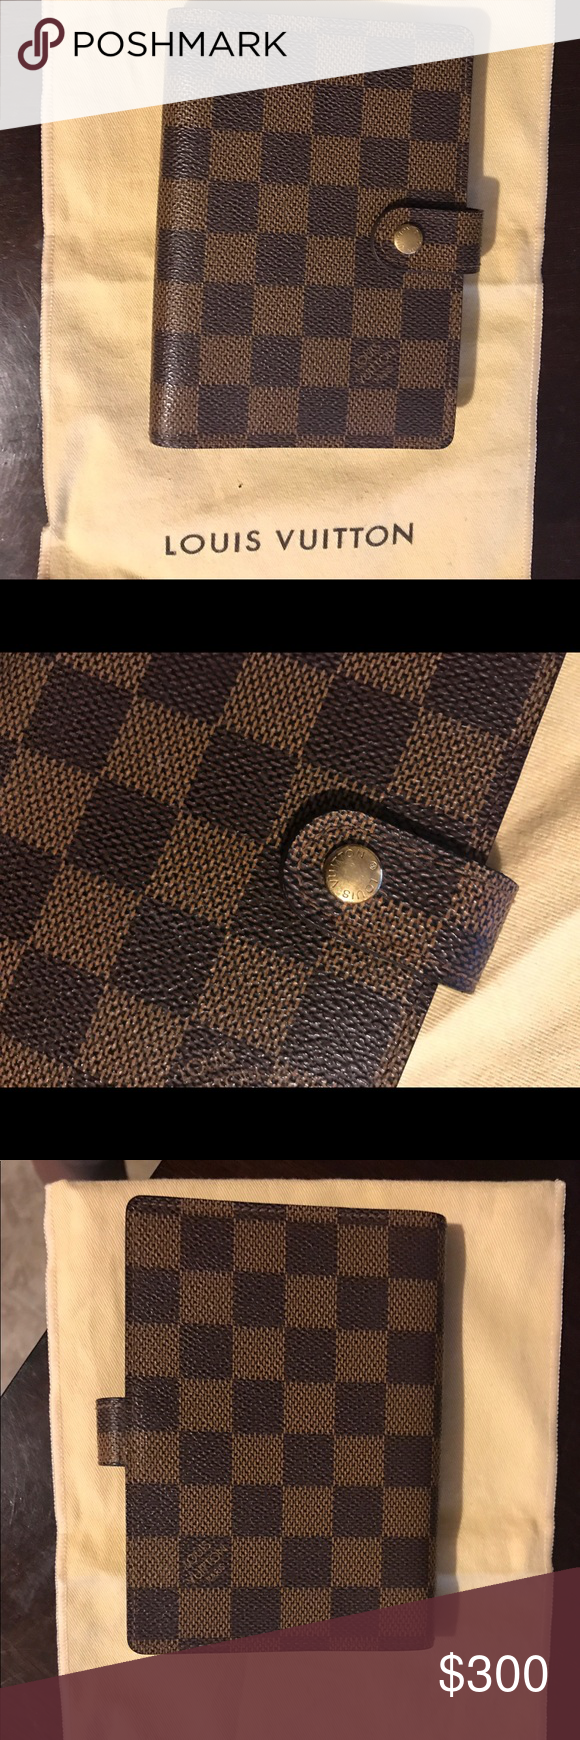 Louis Vuitton Pm Agenda Preloved Pm Agenda In Good Condition Only Used It A Few Times I Need Something A Little Lar Louis Vuitton Bags Louis Vuitton Damier